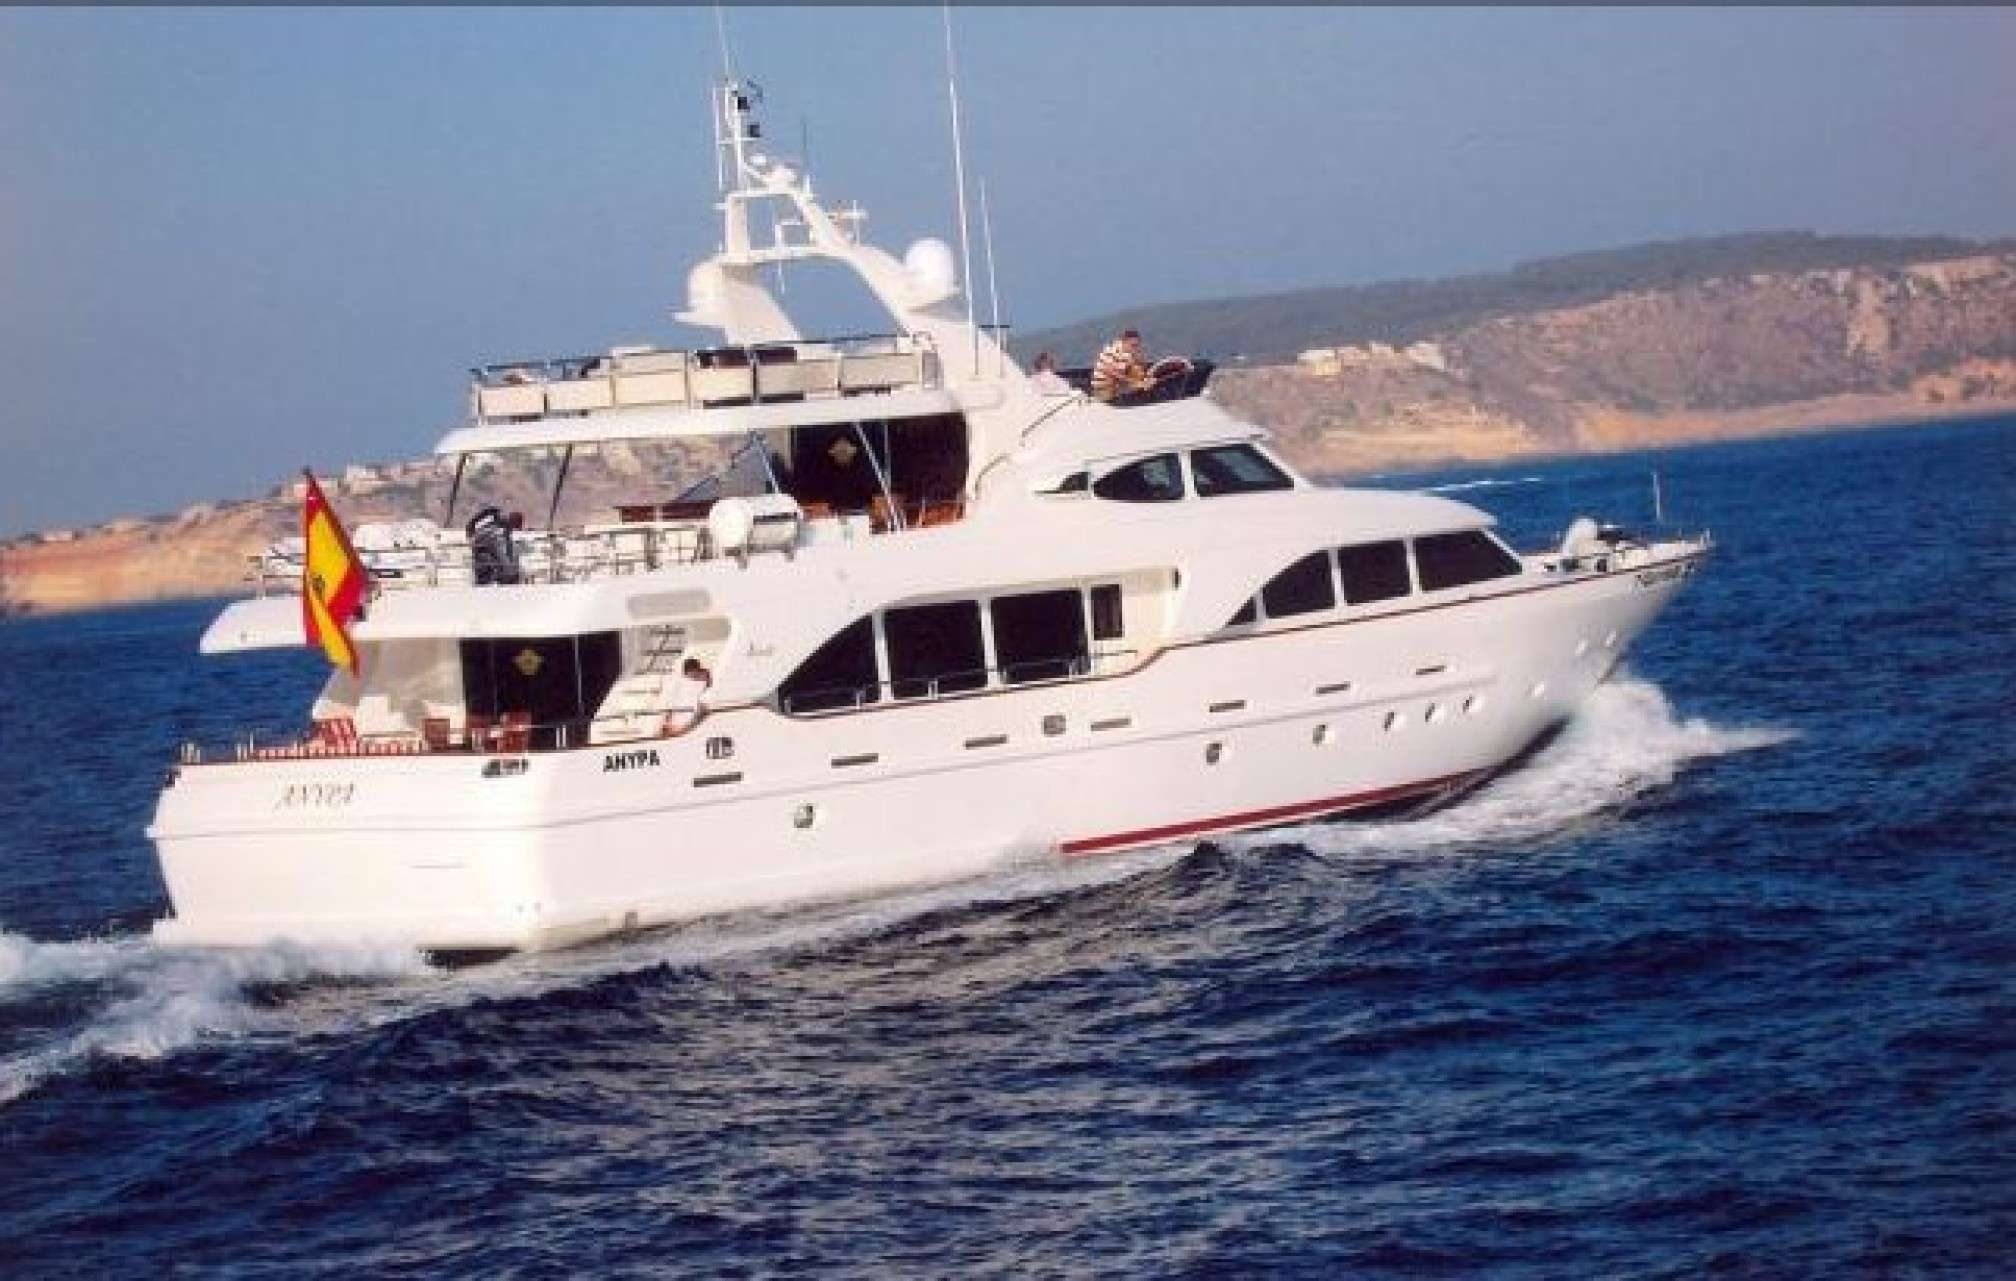 Anypa de luxe yacht sailing